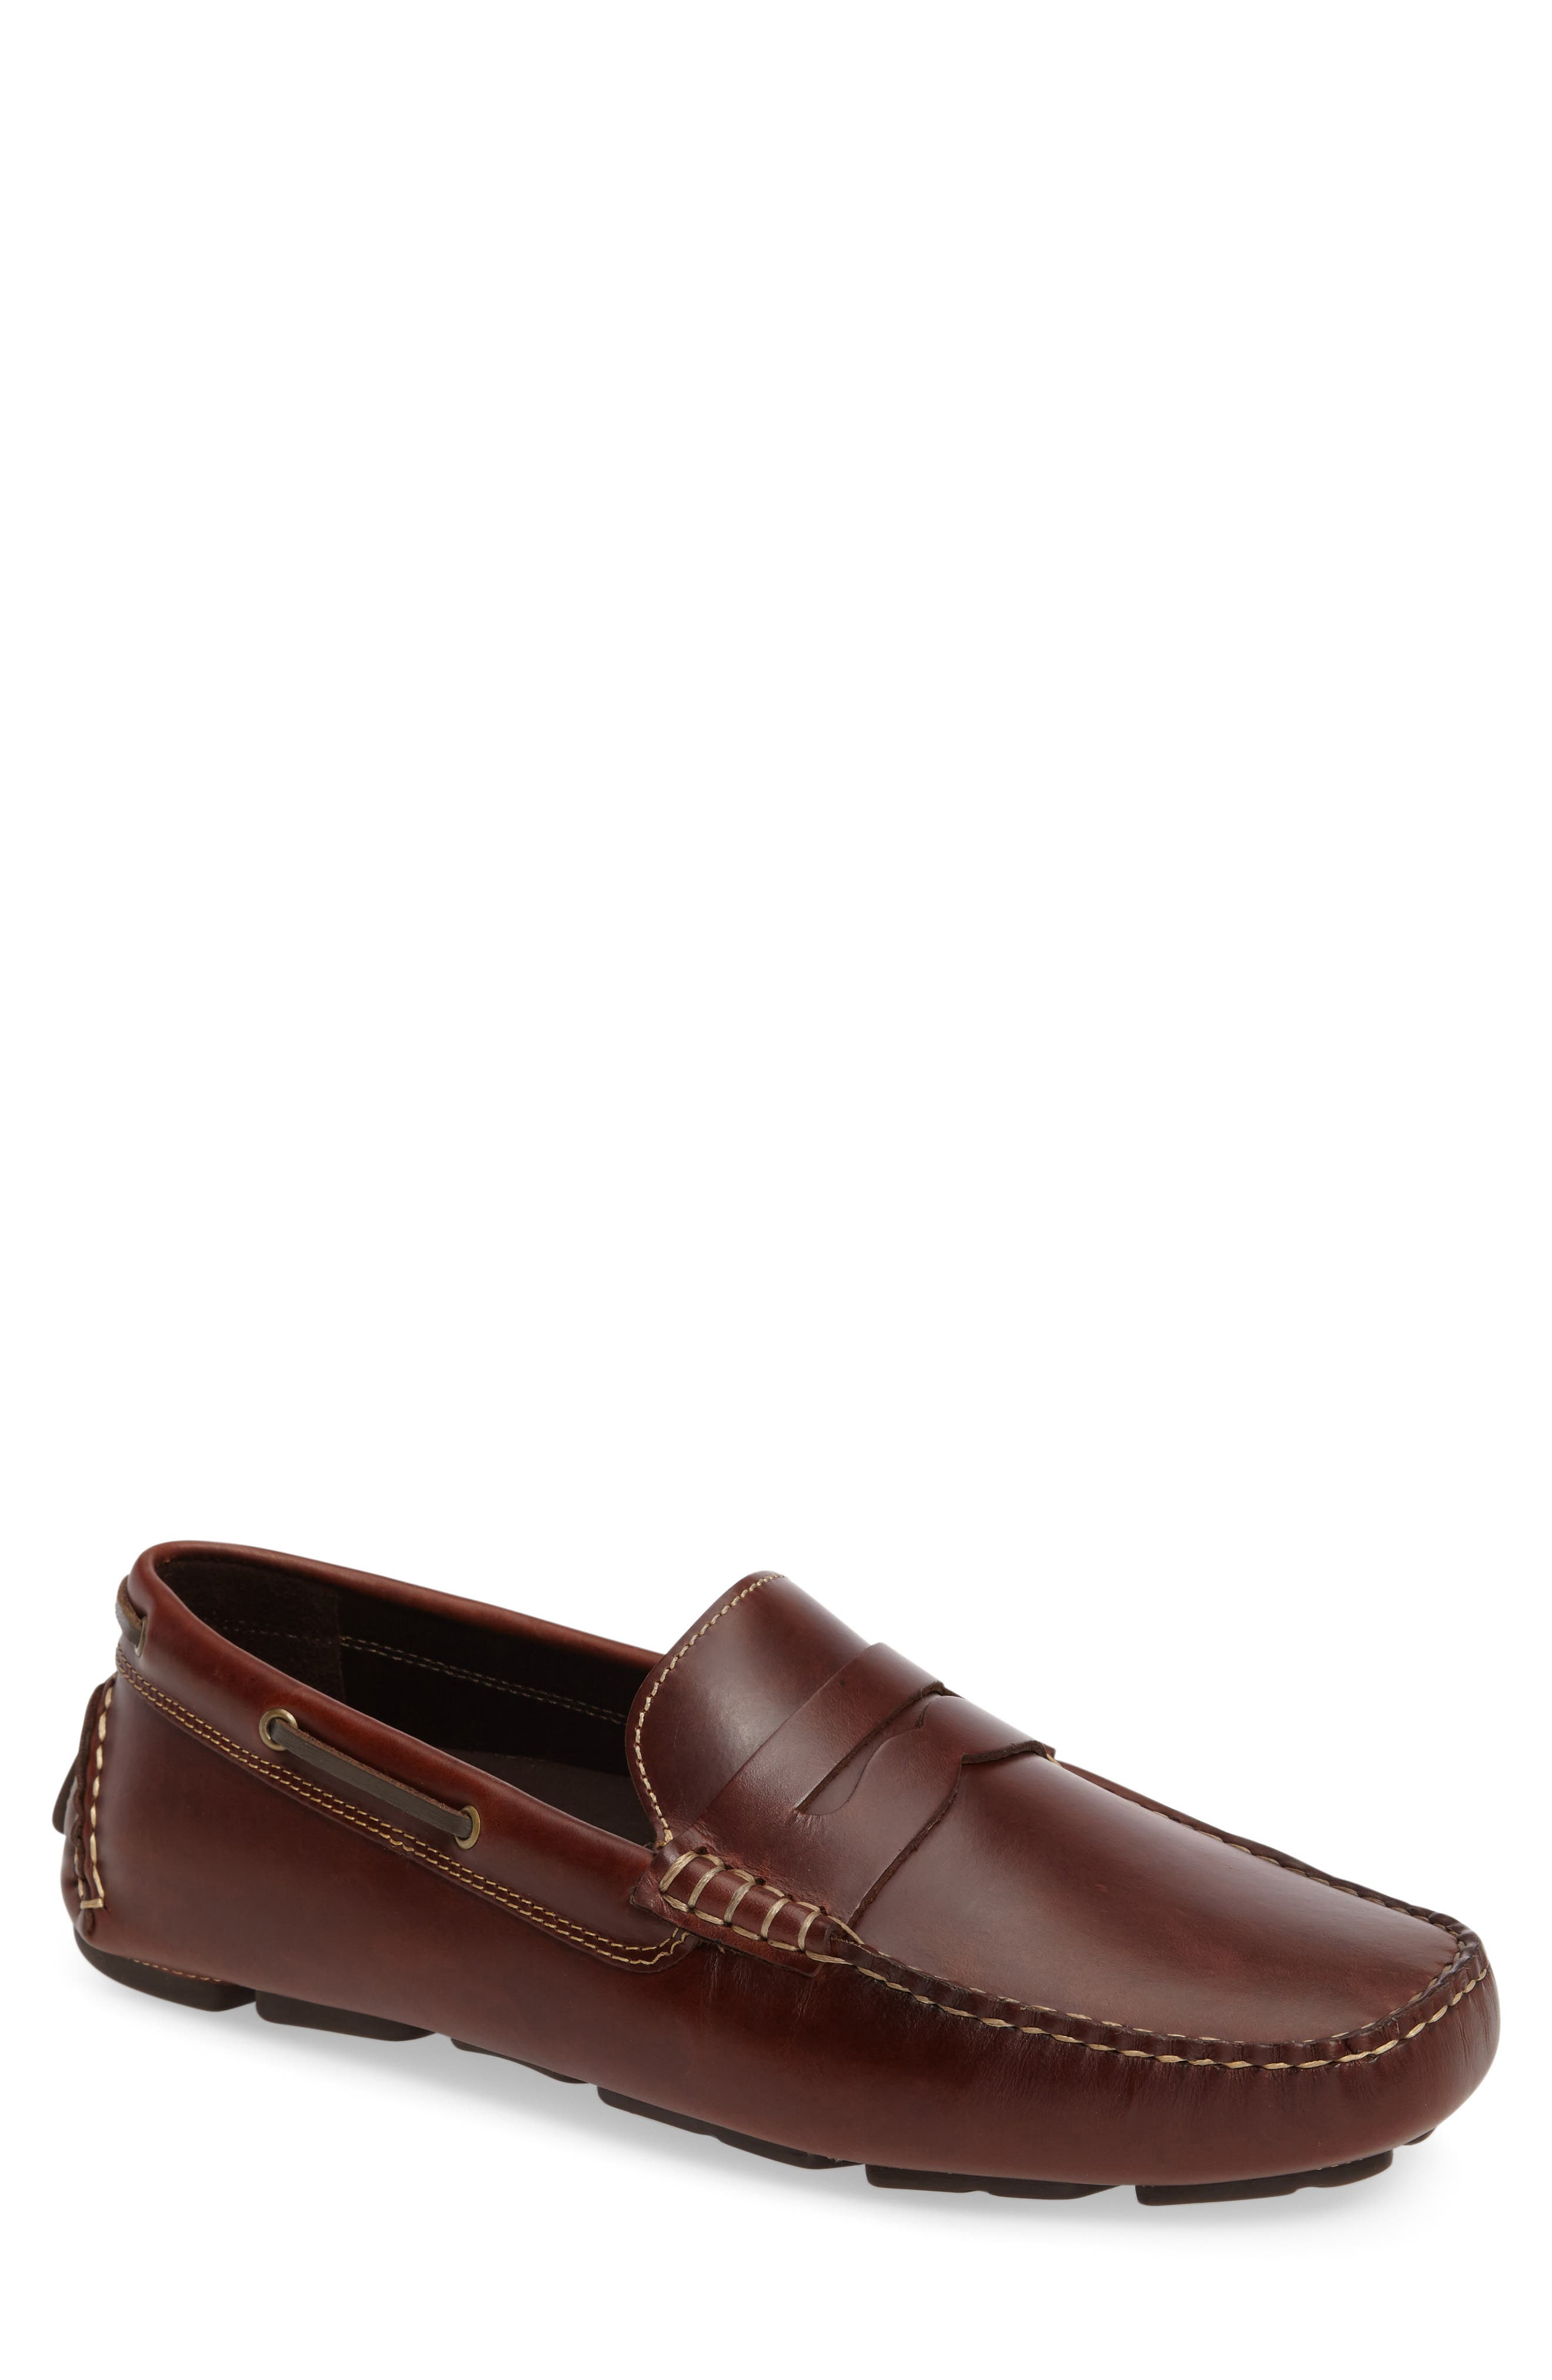 Alternate Image 1 Selected - Johnston & Murphy Gibson Penny Driving Loafer (Men)